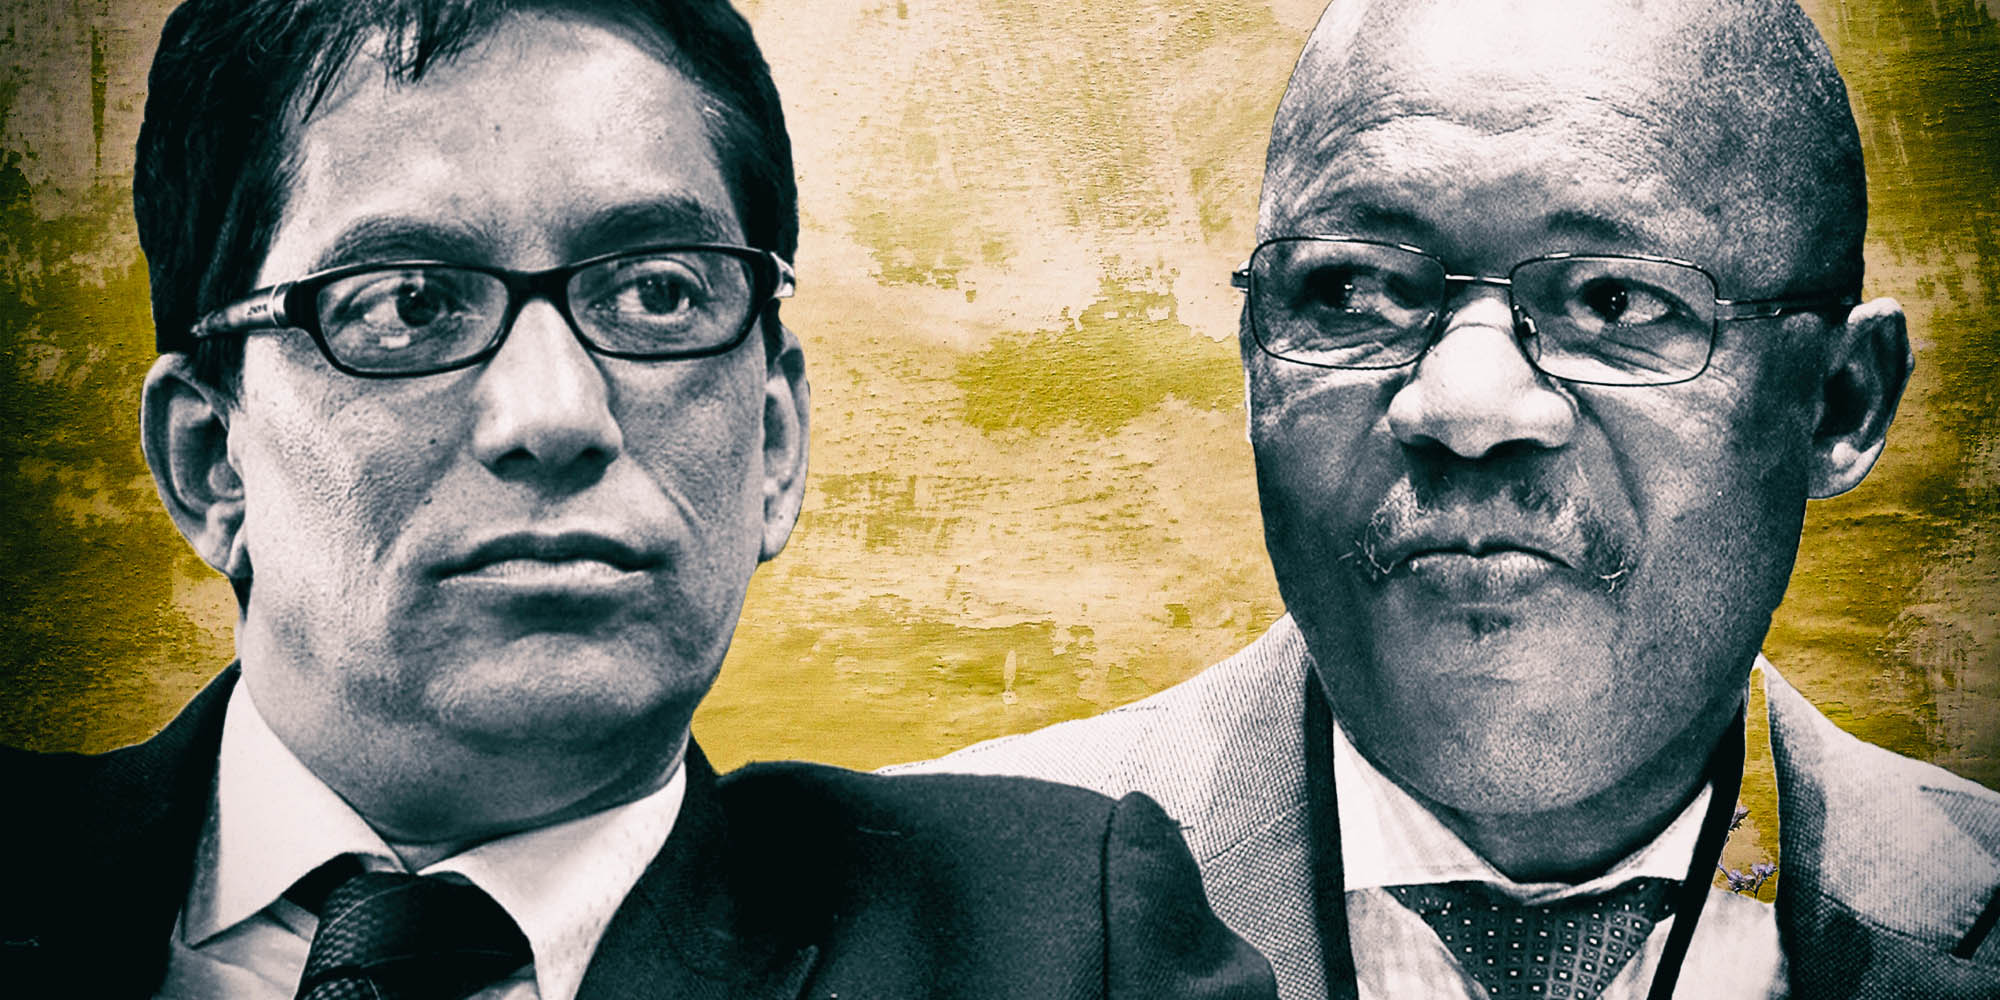 Iqbal Surv� warns 1500 staff of big salary cuts � but is it really about Covid-19? - Daily Maverick